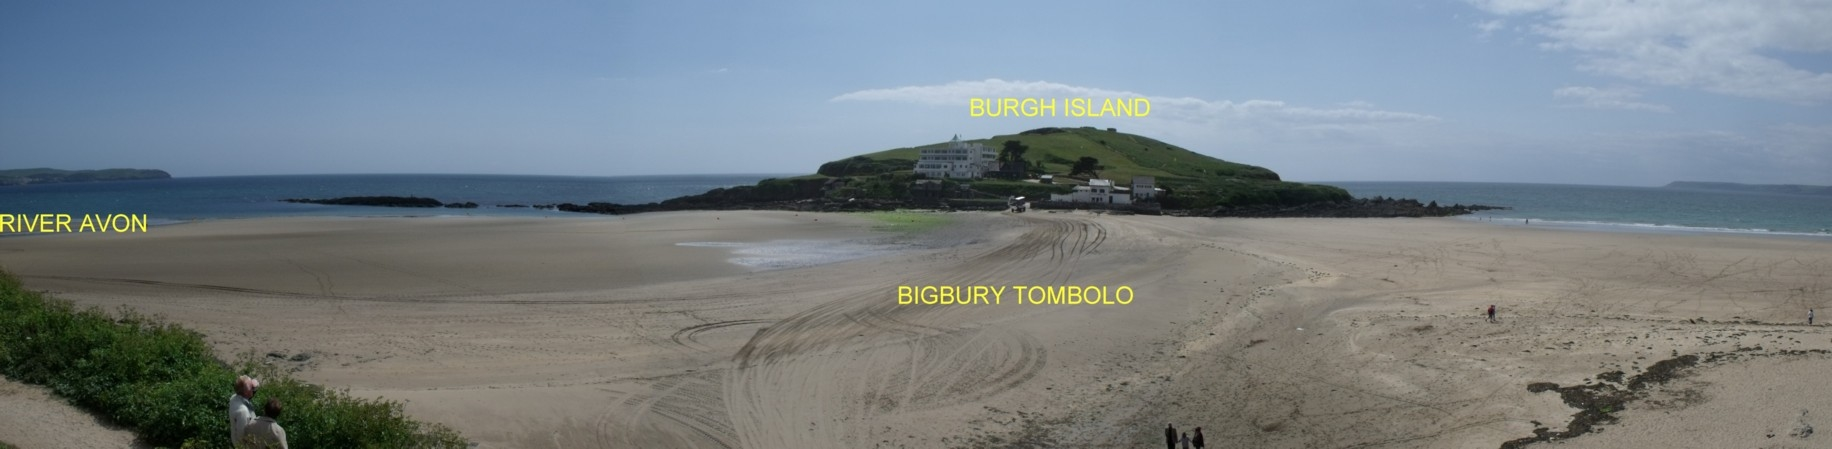 Gc2x36g bigbury beach tombolo earthcache in south west england bigbury beach located in the south hams area of devon is a fantastic example of a coastal sedimentary feature known as a tombolo pooptronica